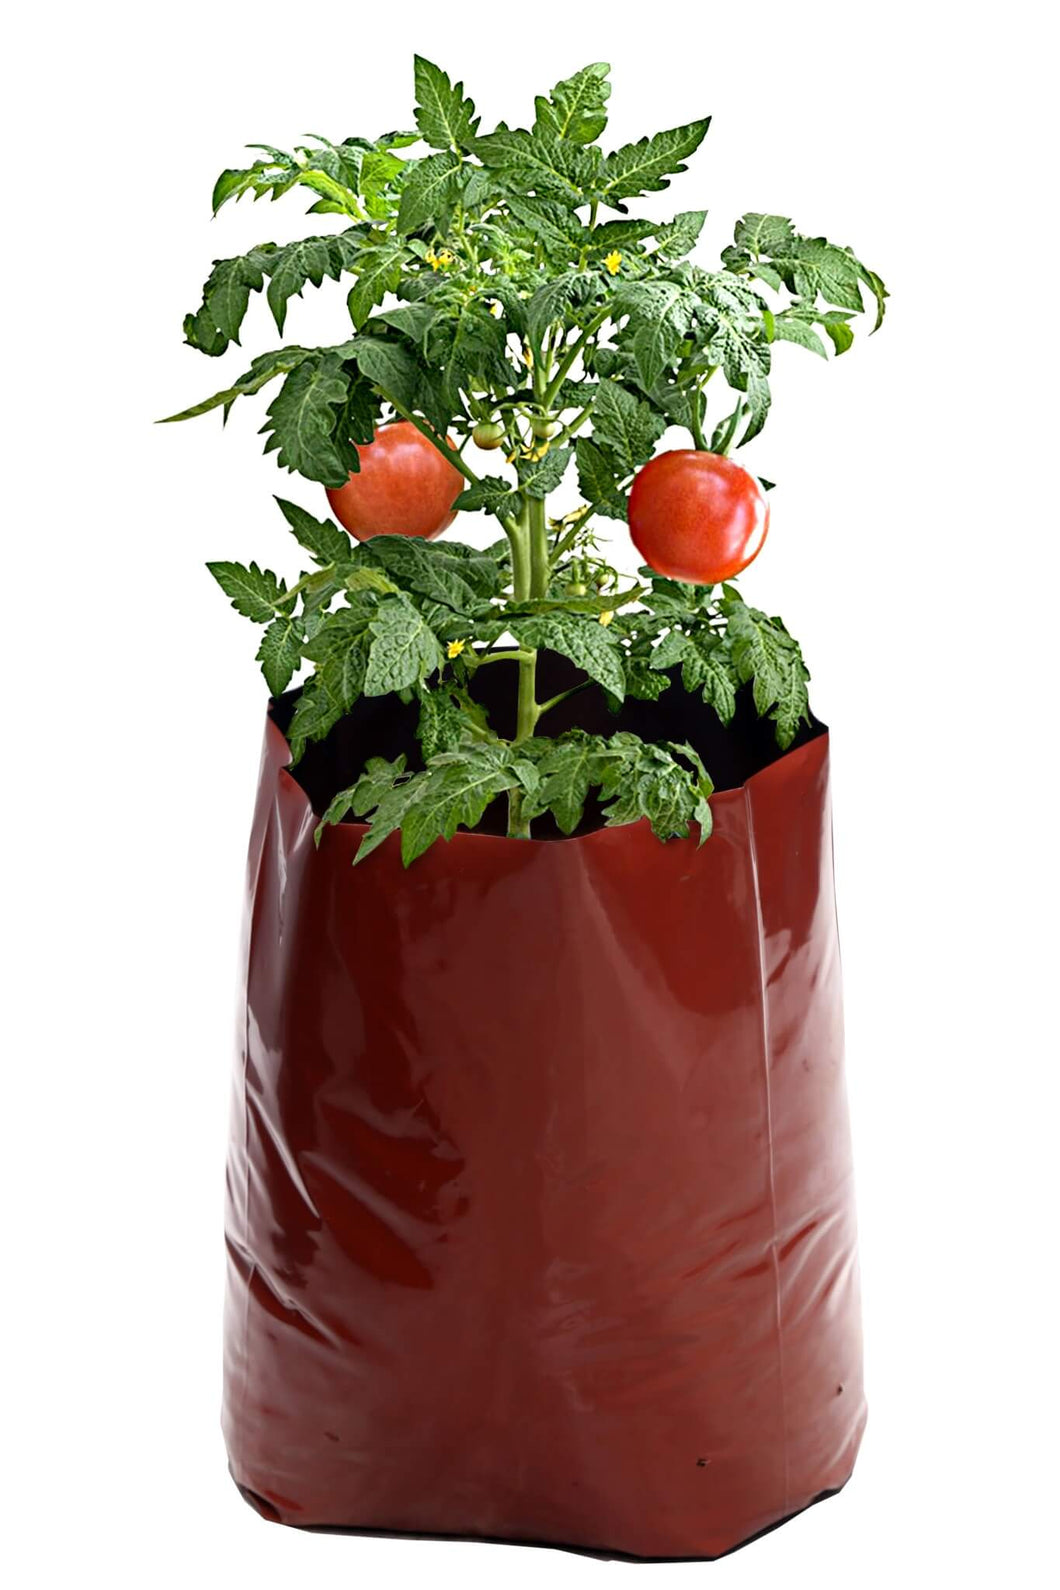 Rochfern Grow Bag,Extra Large,100% Virgin Polyethylene, (60 x 34 x 20Cms.) UV Treated Pack of 18